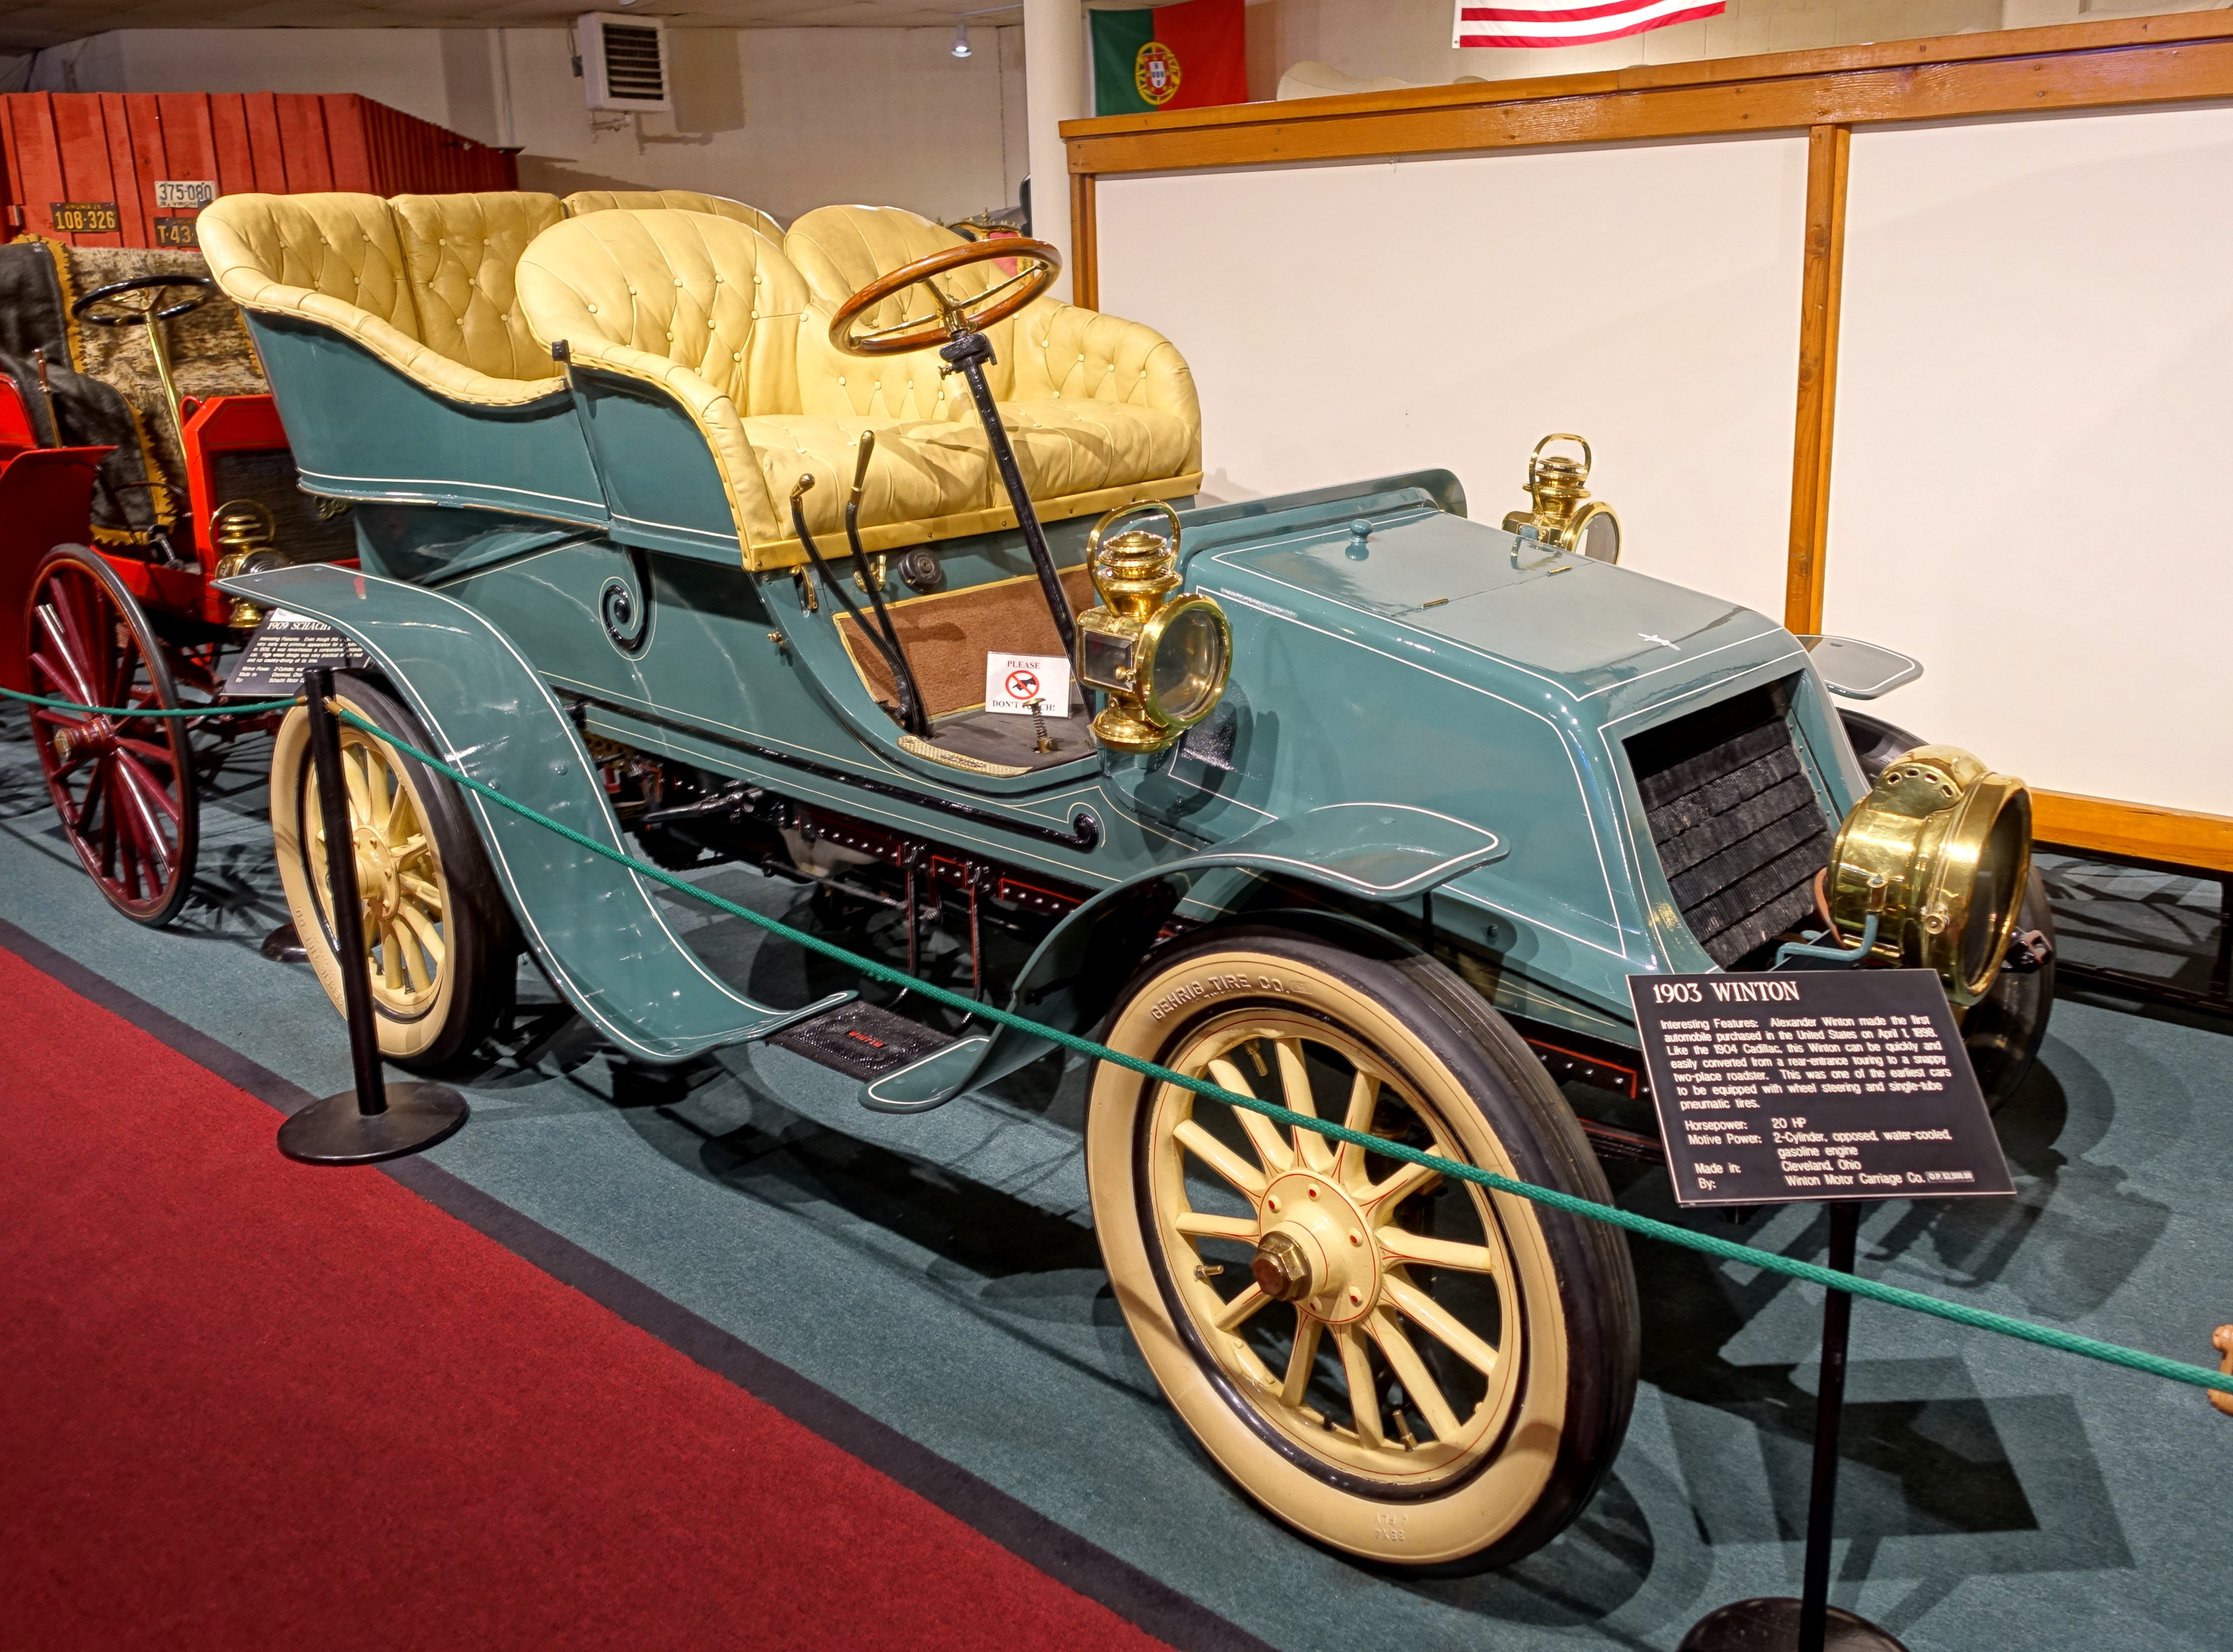 File:Winton automobile, 1903, made by Wintor Motor Carriage Co ...